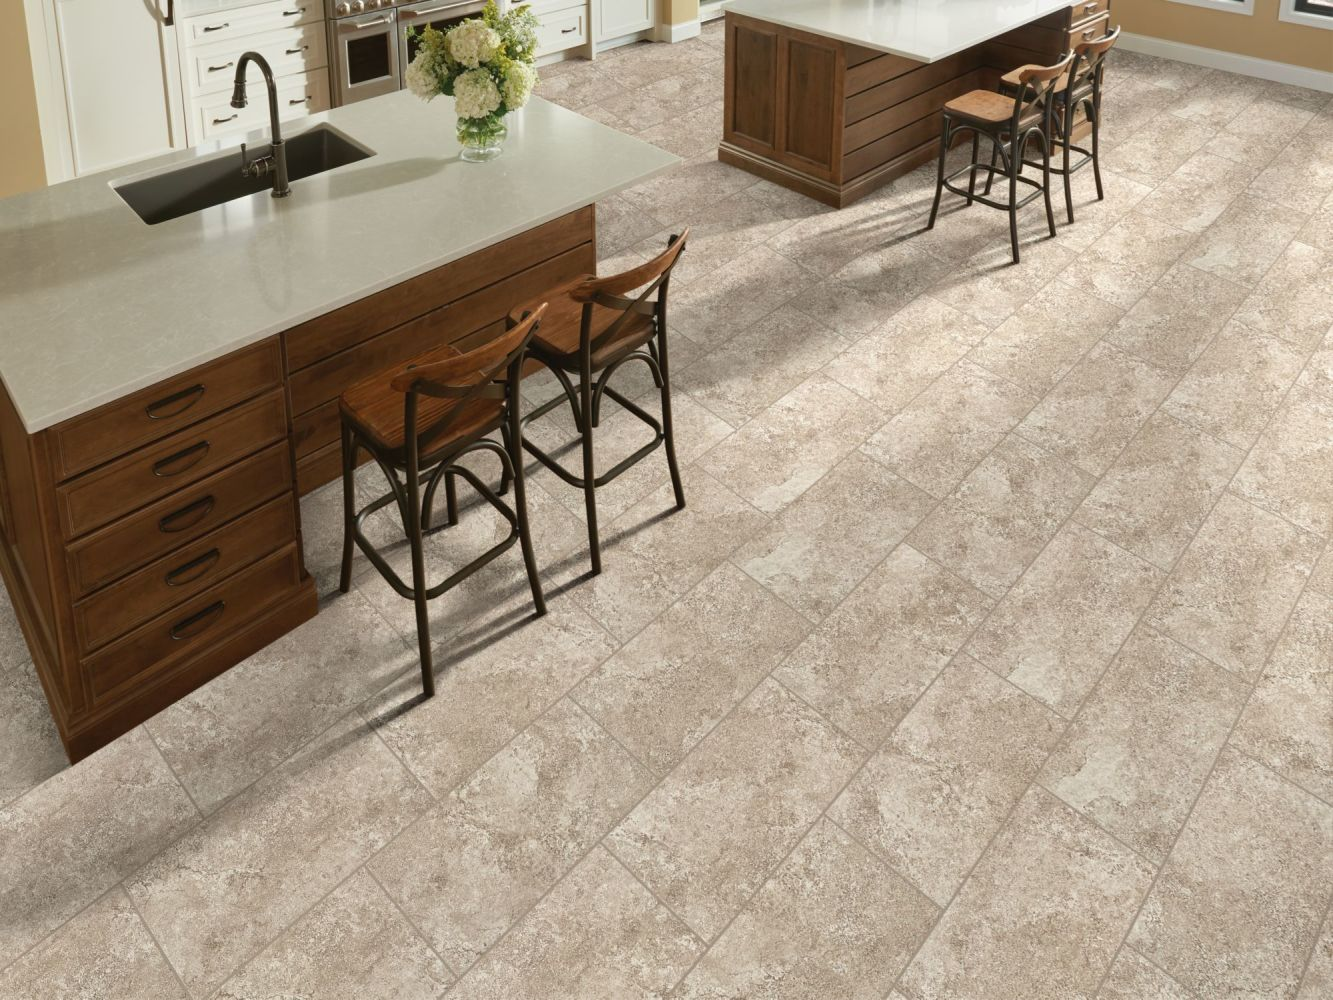 Shaw Floors Ceramic Solutions Jackson 12×24 Noce 00700_257TS